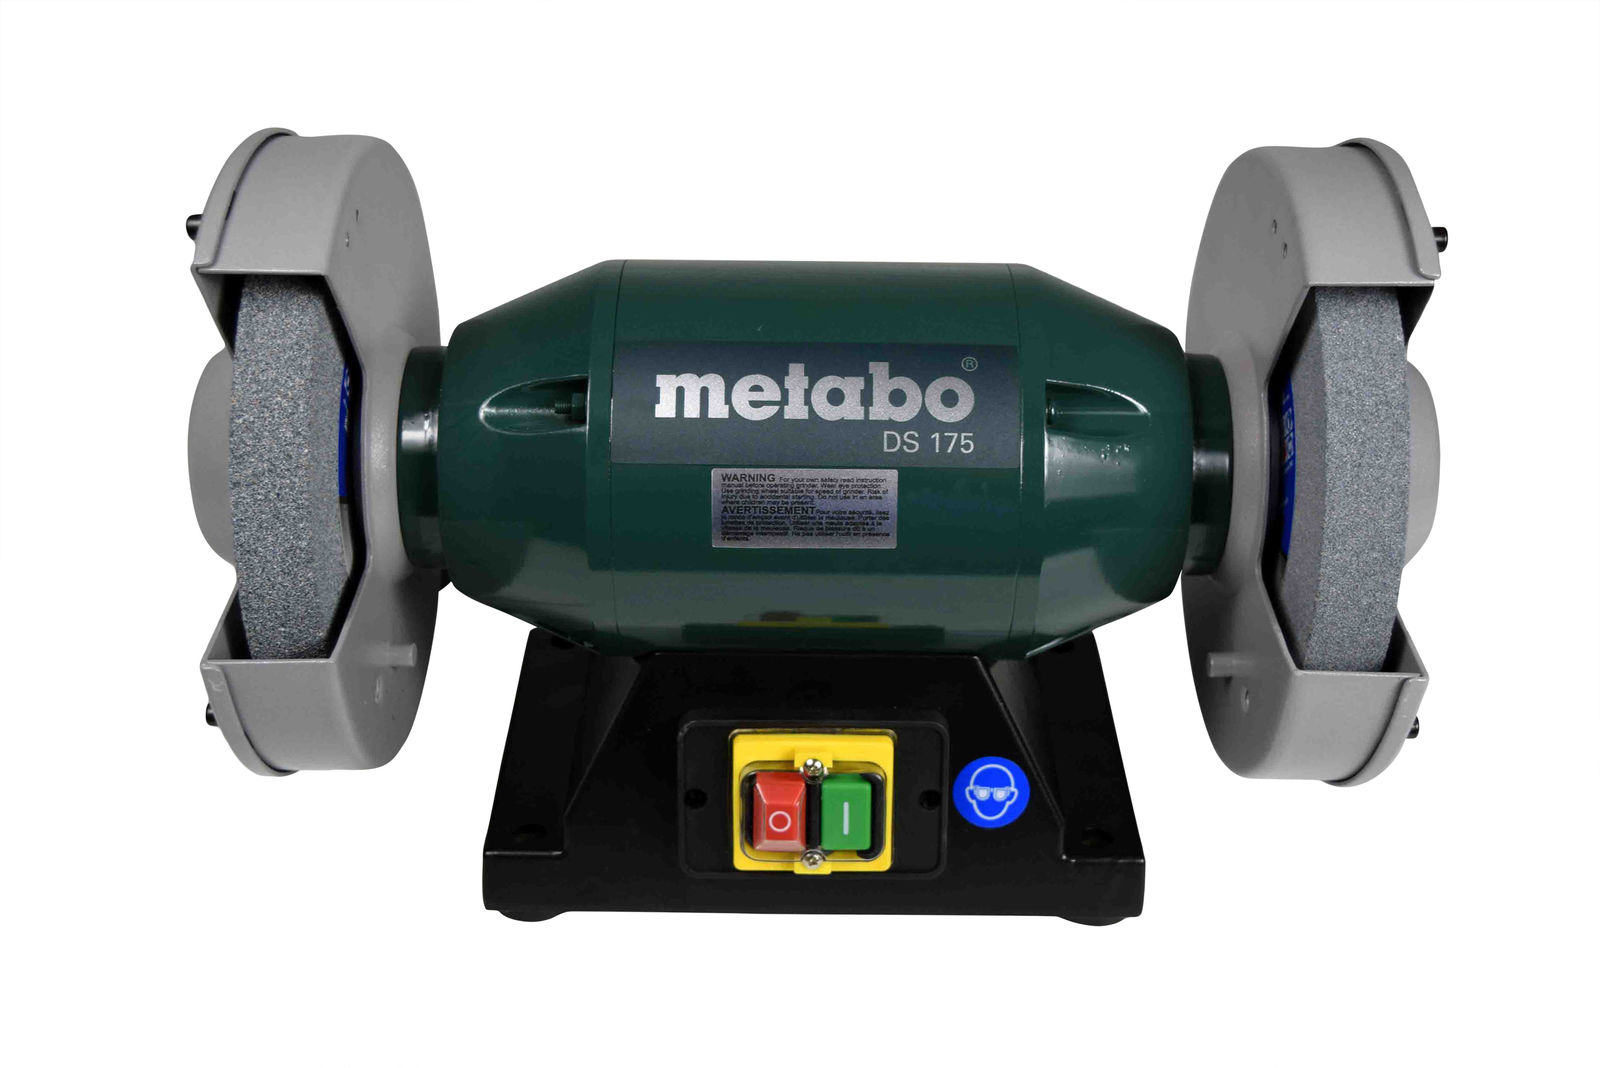 Metabo 619175420 Ds 175 7 In 3 7 Amp Bench Grinder Ds 175